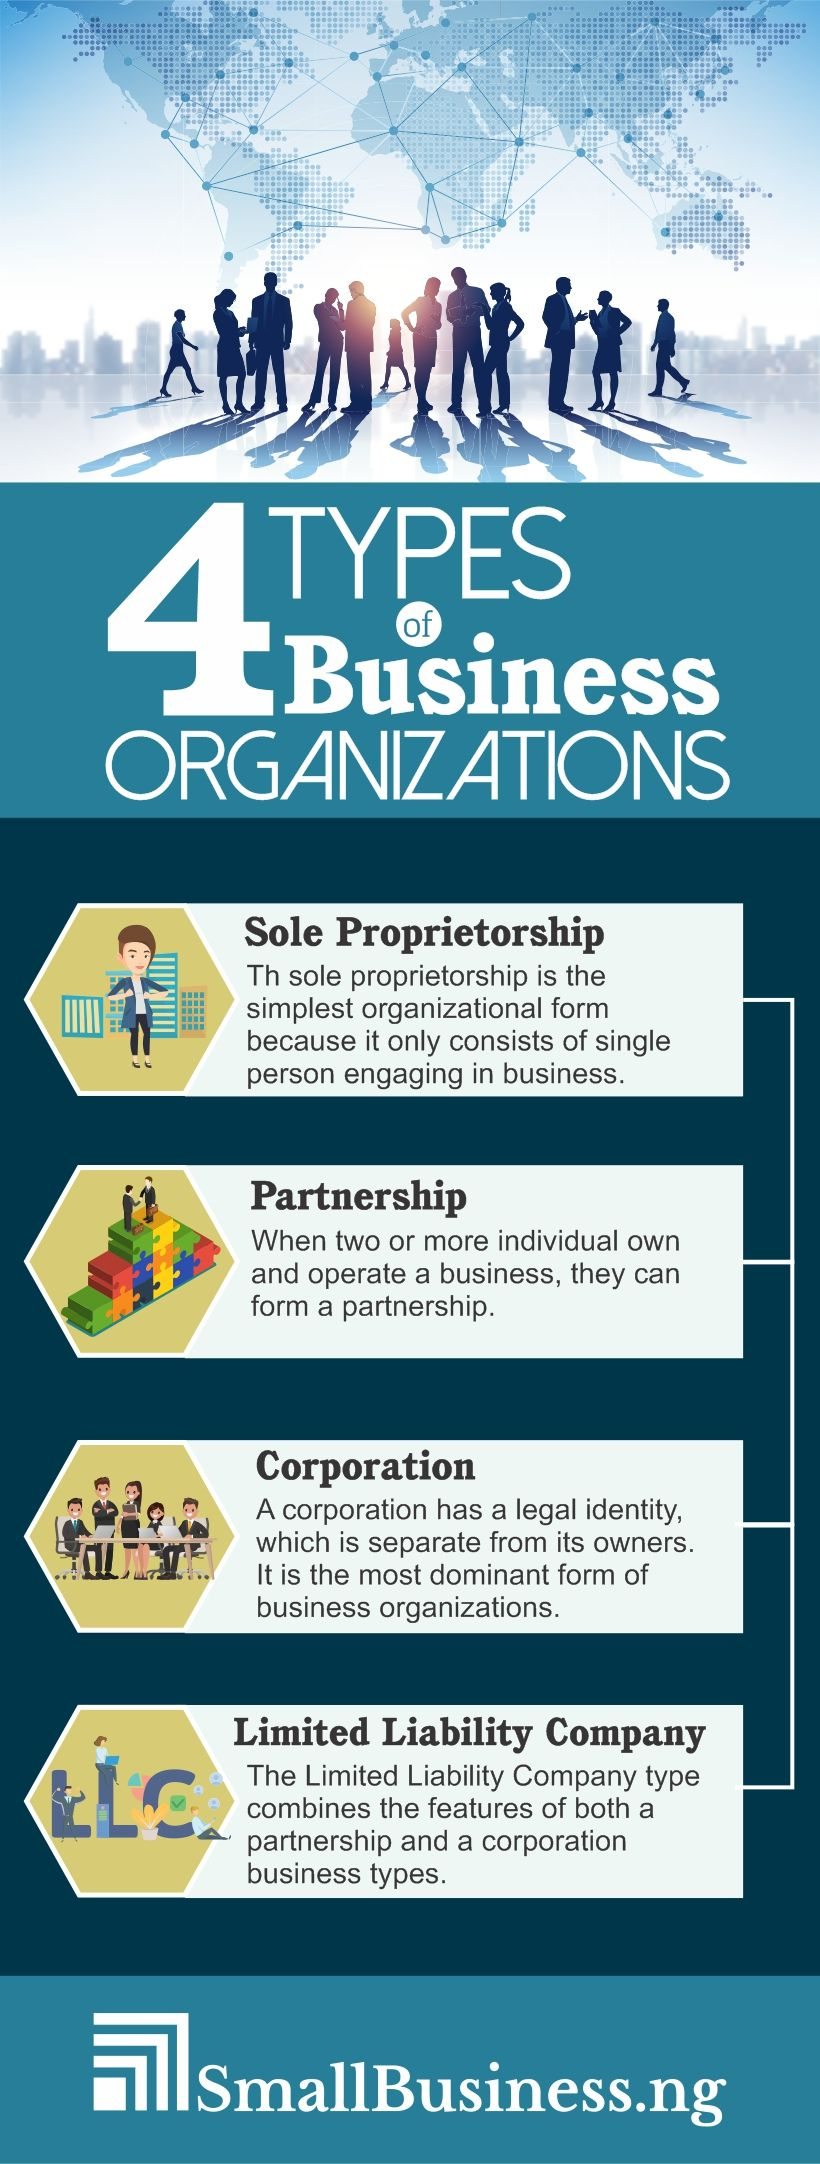 Types of Business Organizations in 2020 Business